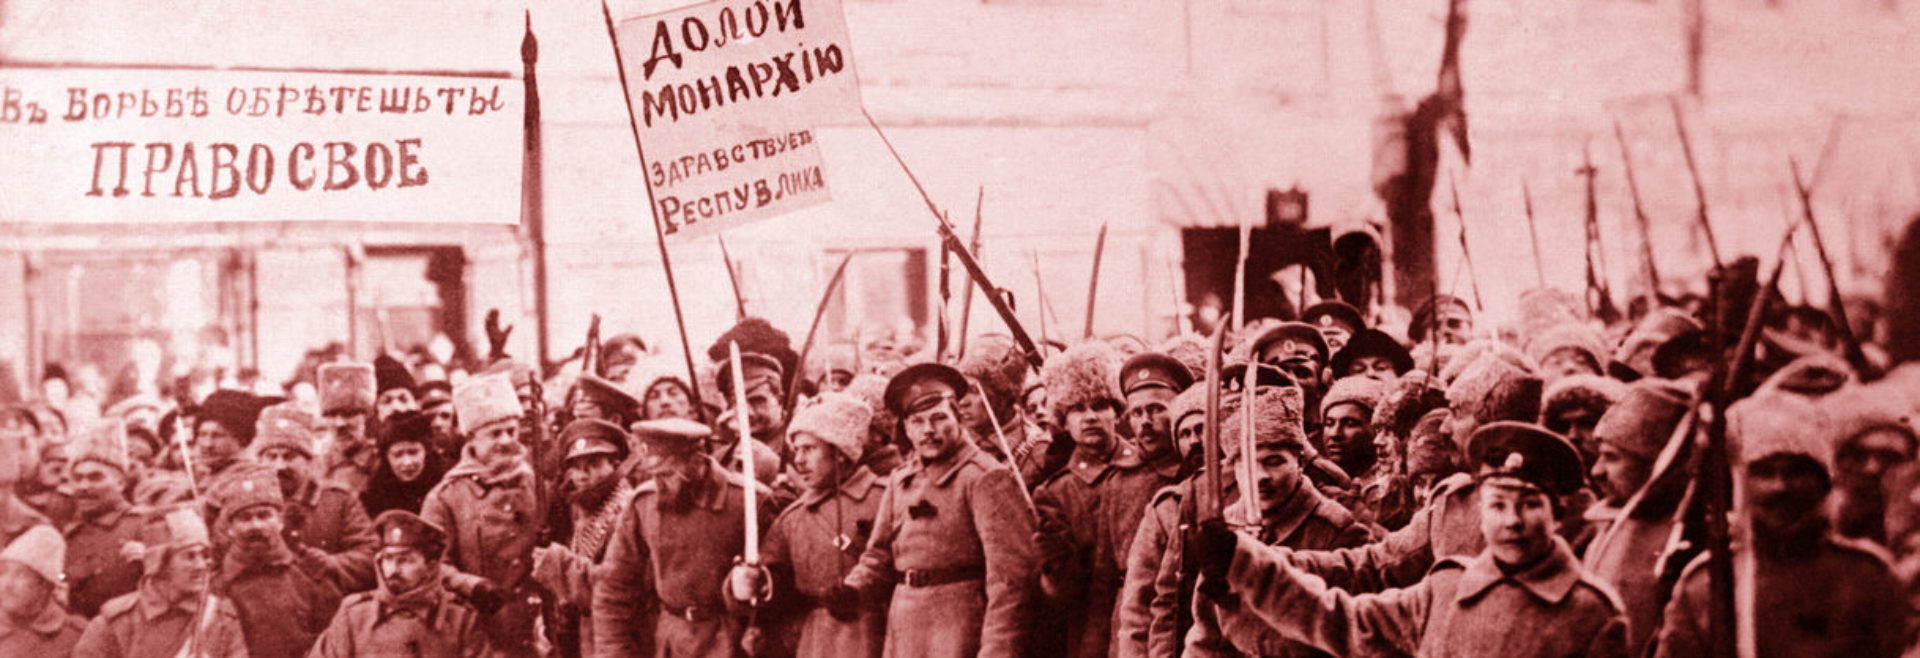 1917 digital resources on the russian revolution